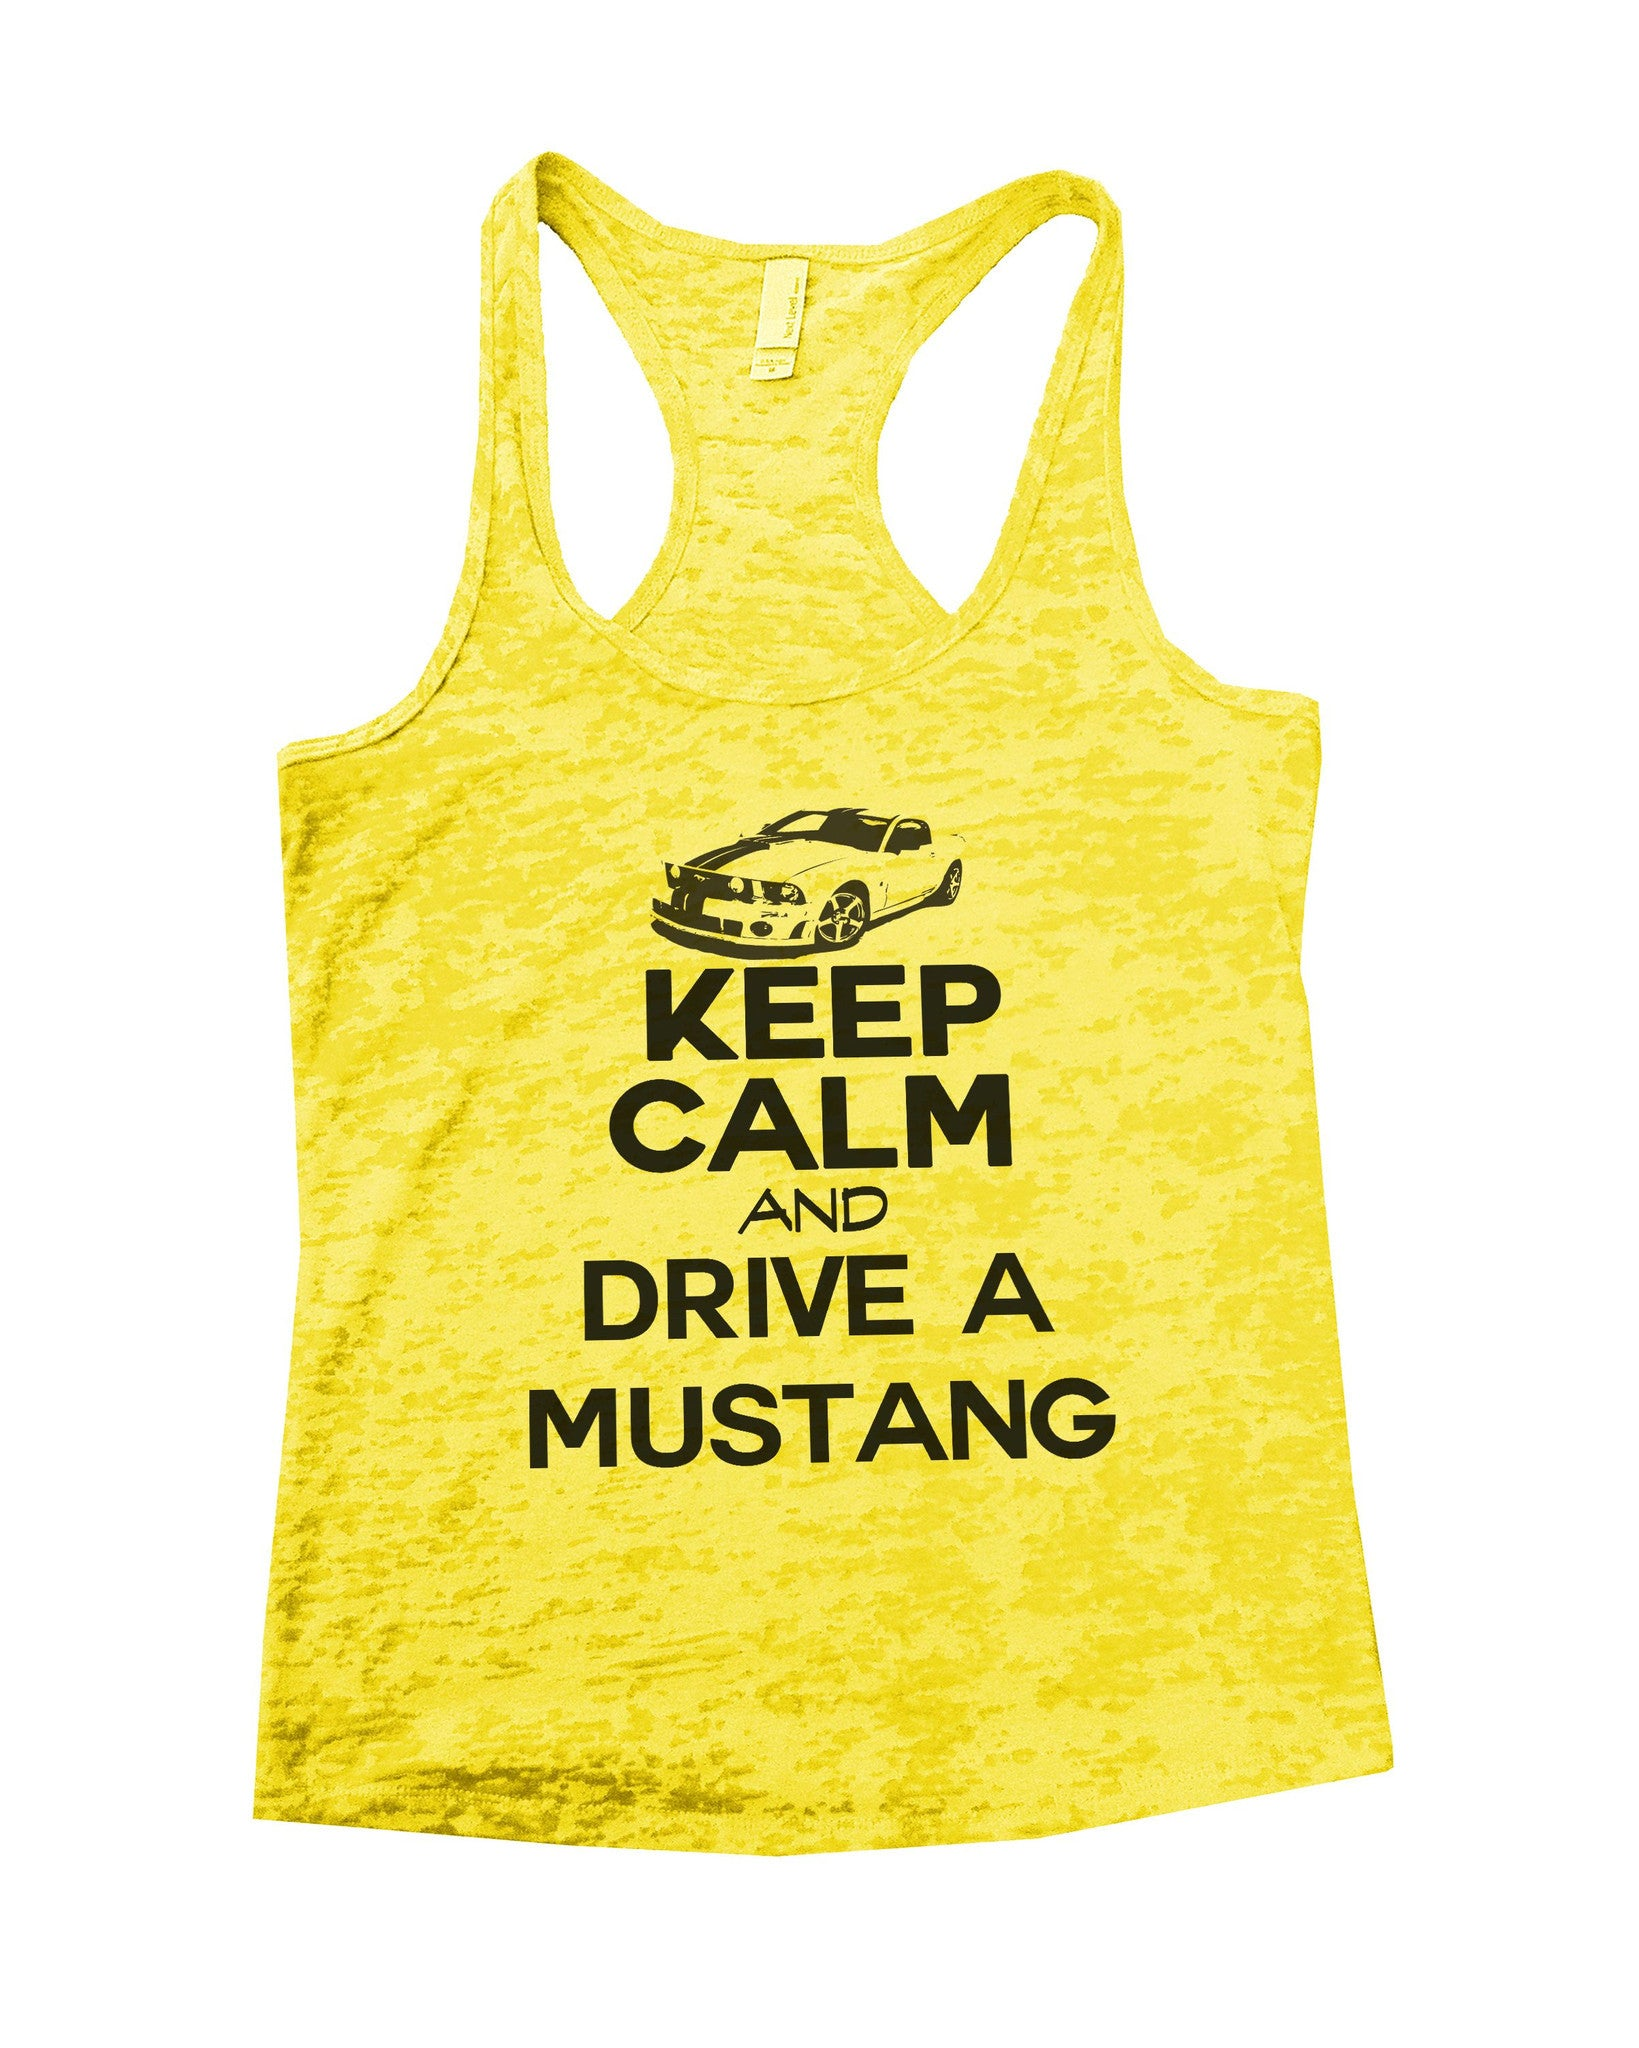 Keep Calm And Drive A Mustang Burnout Tank Top By BurnoutTankTops.com - 739 - Funny Shirts Tank Tops Burnouts and Triblends  - 6